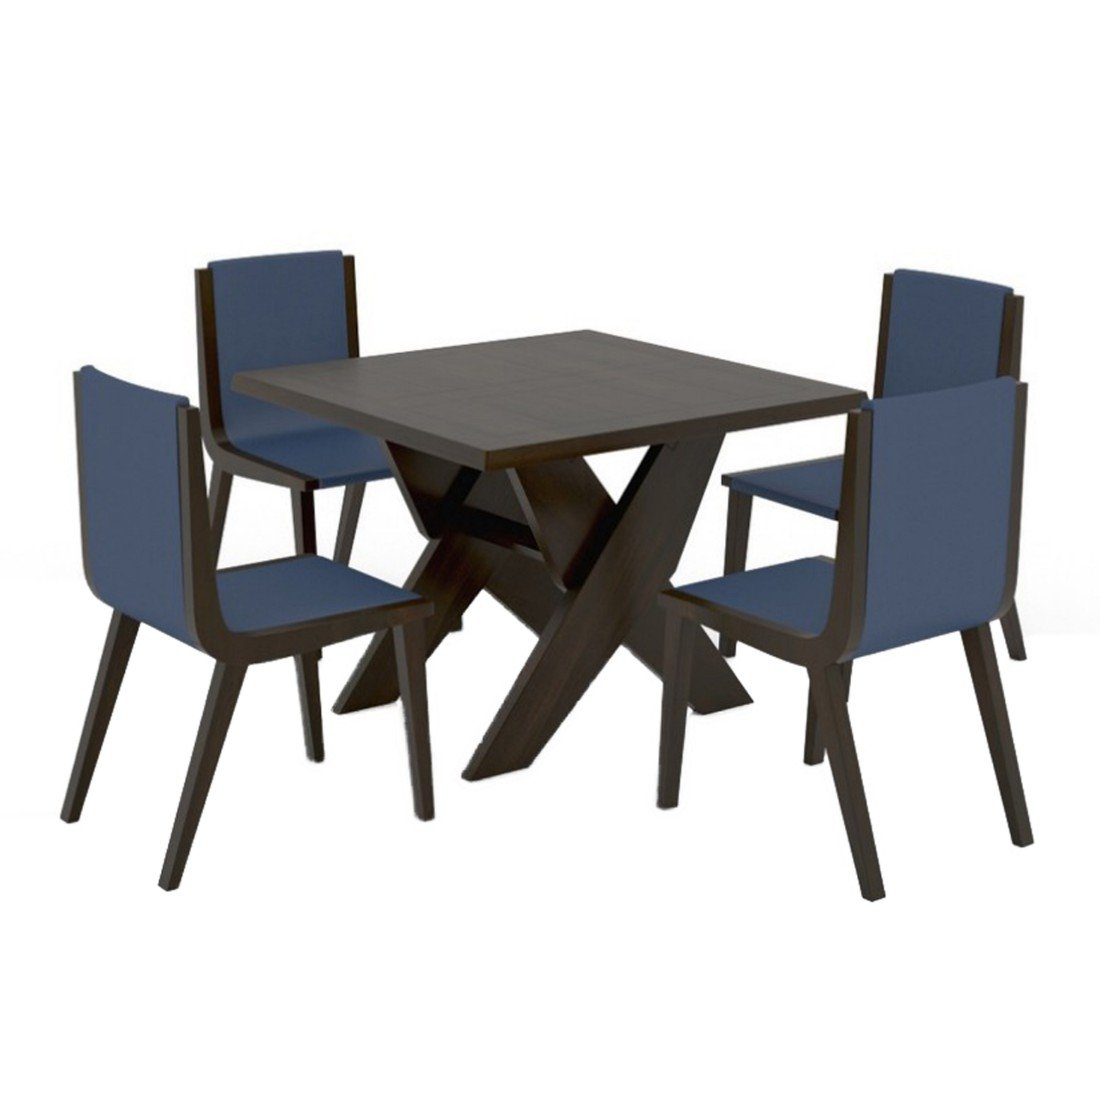 Funterior classy finish teak wood 4 seater leatherette dining table navy blue amazon in home kitchen